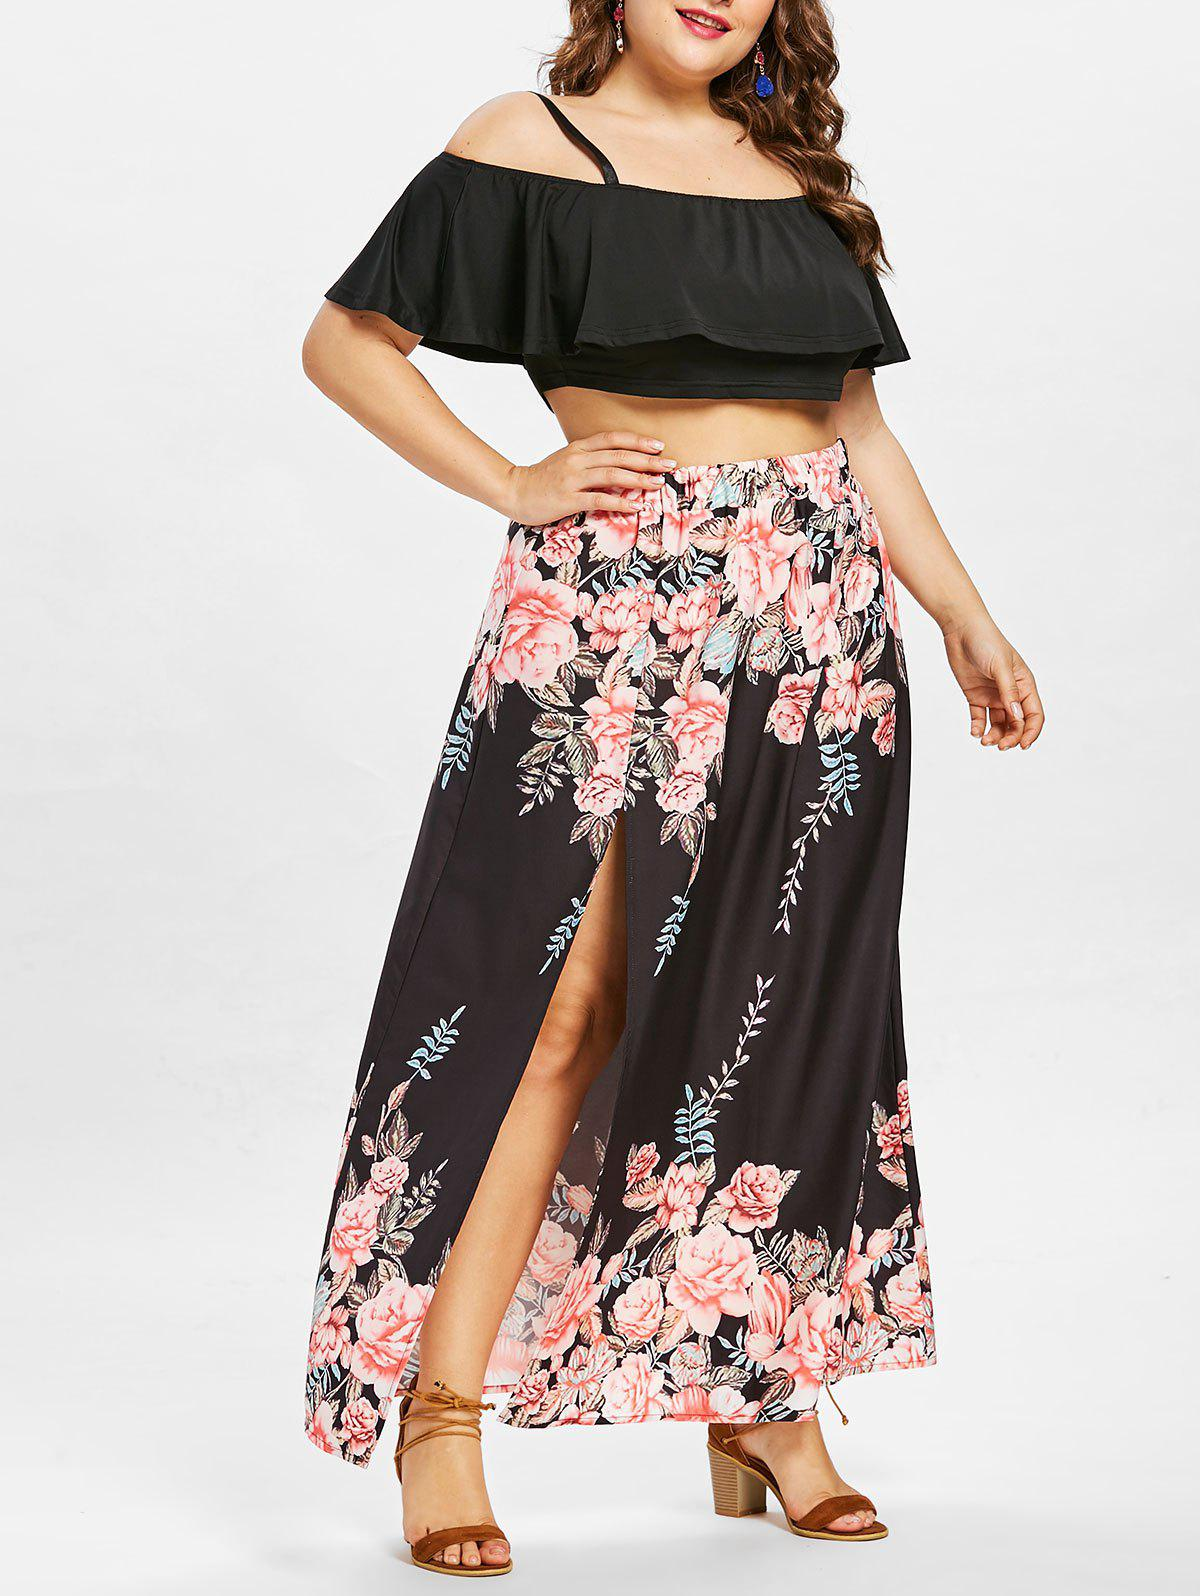 a6617422cb3 2019 Plus Size Layered Crop Top With Floral Print Skirt